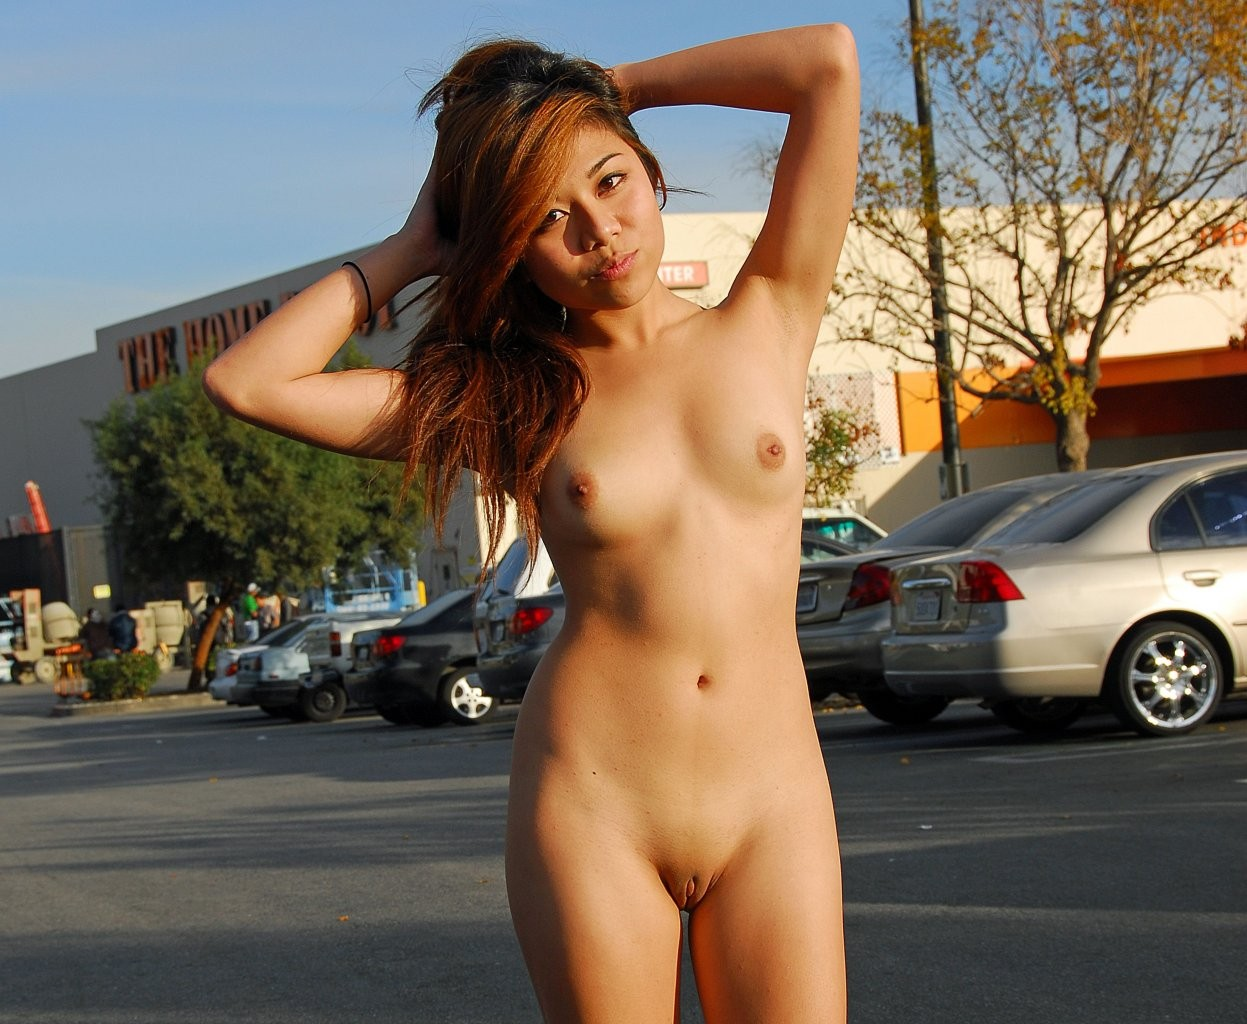 Nude girls at home depot You will